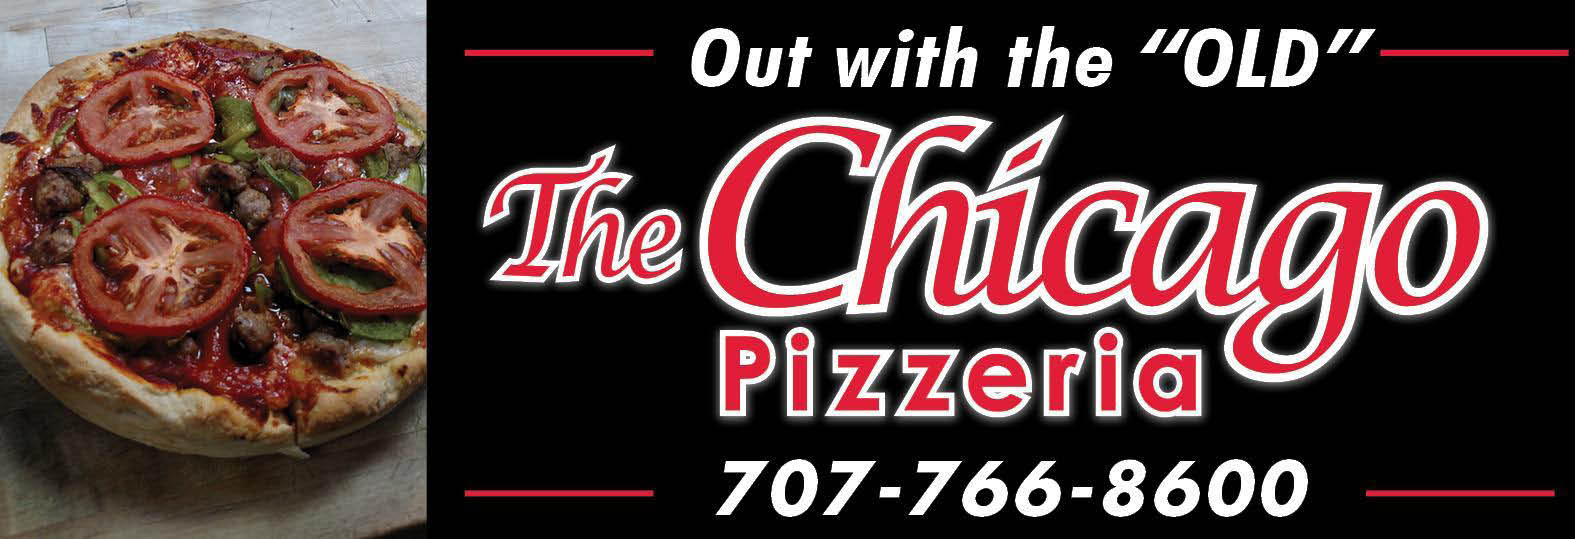 Old Chicago Pizza name change to The Chicago Pizzeria banner